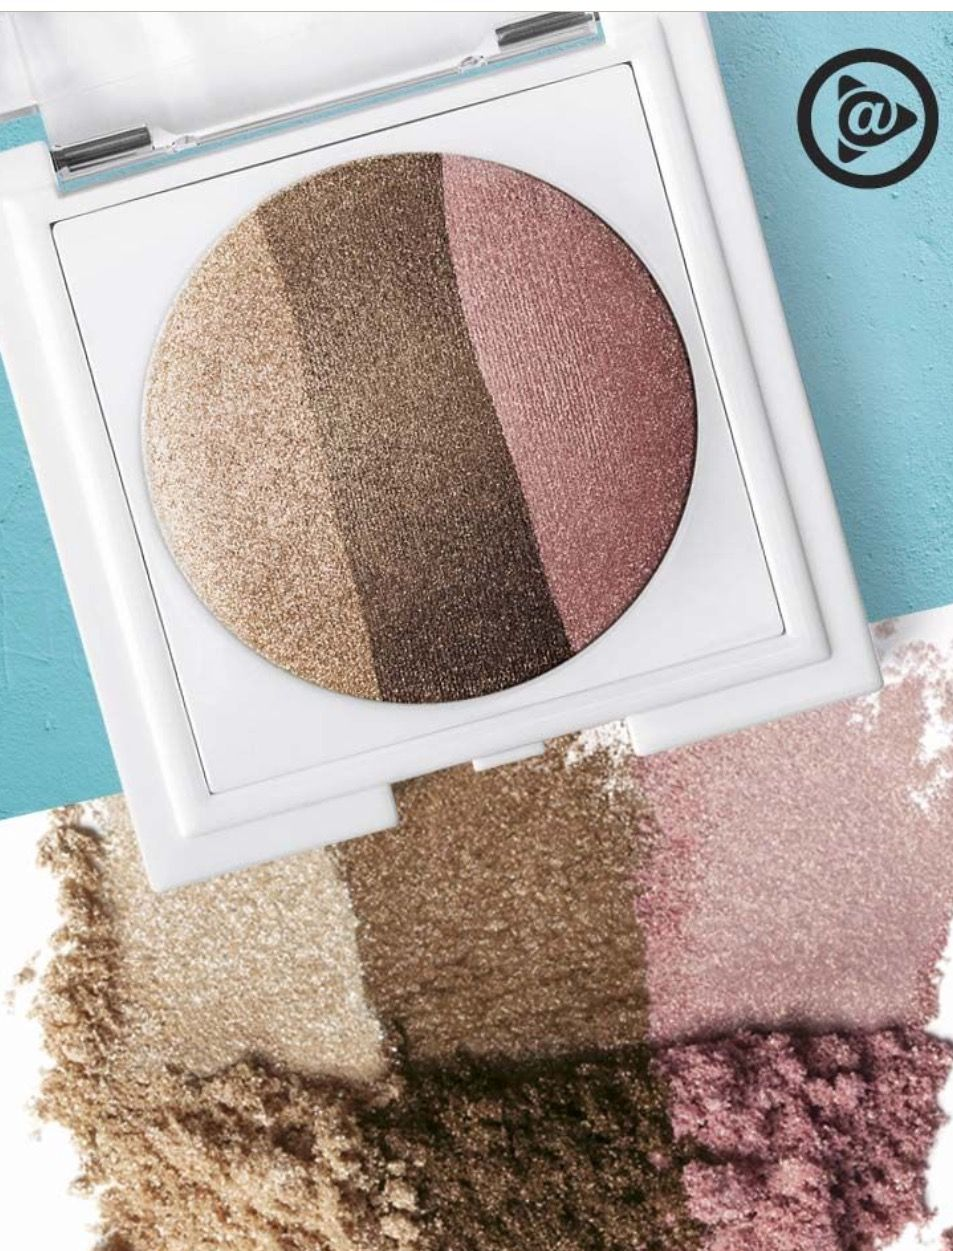 The Baked Trio is one of my best sellers... Gorgeous colour, easy application and a fine end result!